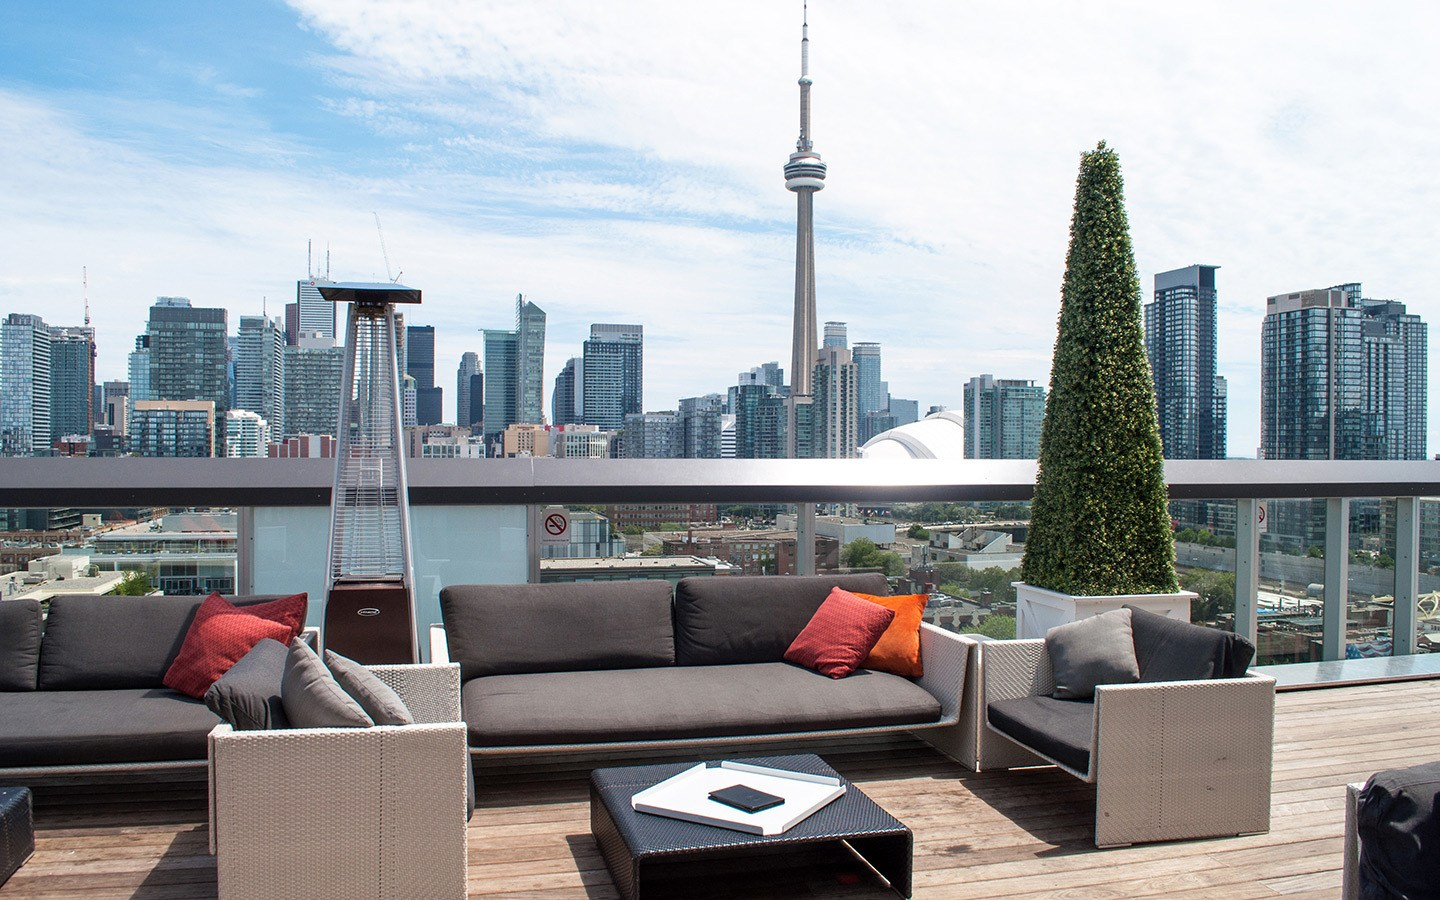 The rooftop patio at the Thompson hotel Toronto